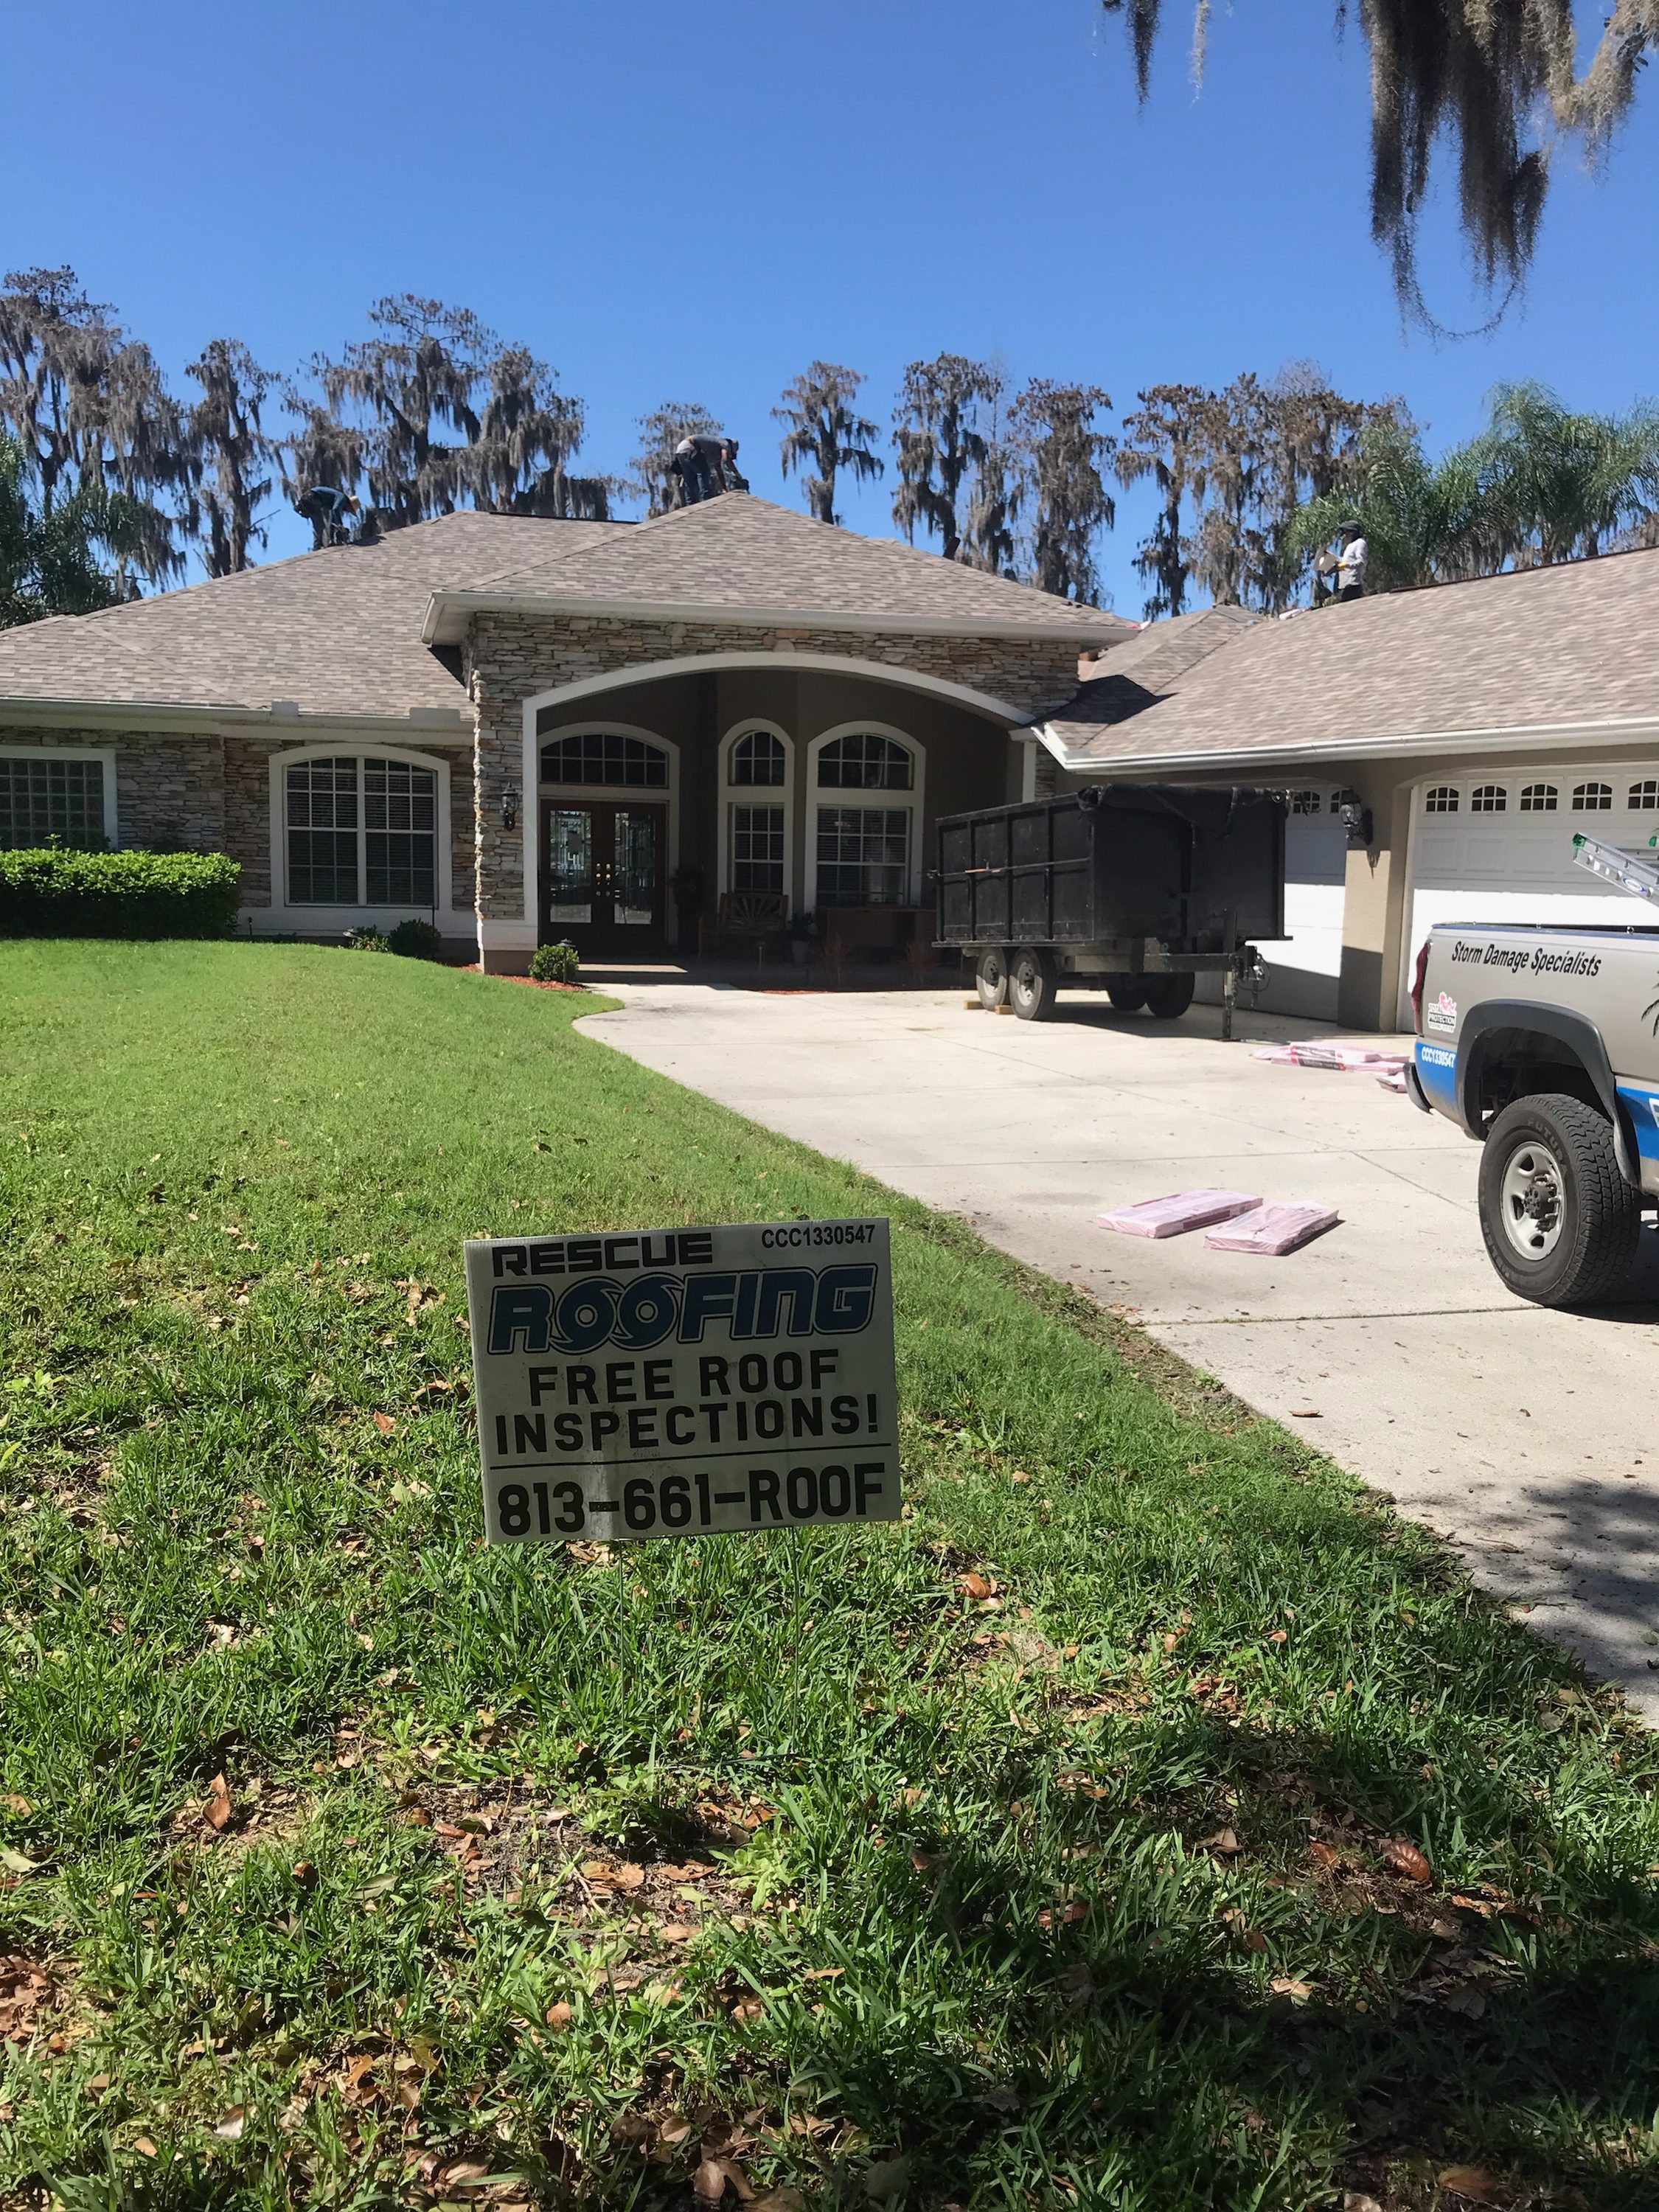 Gallery Rescue Roofing Of Tampa Inc